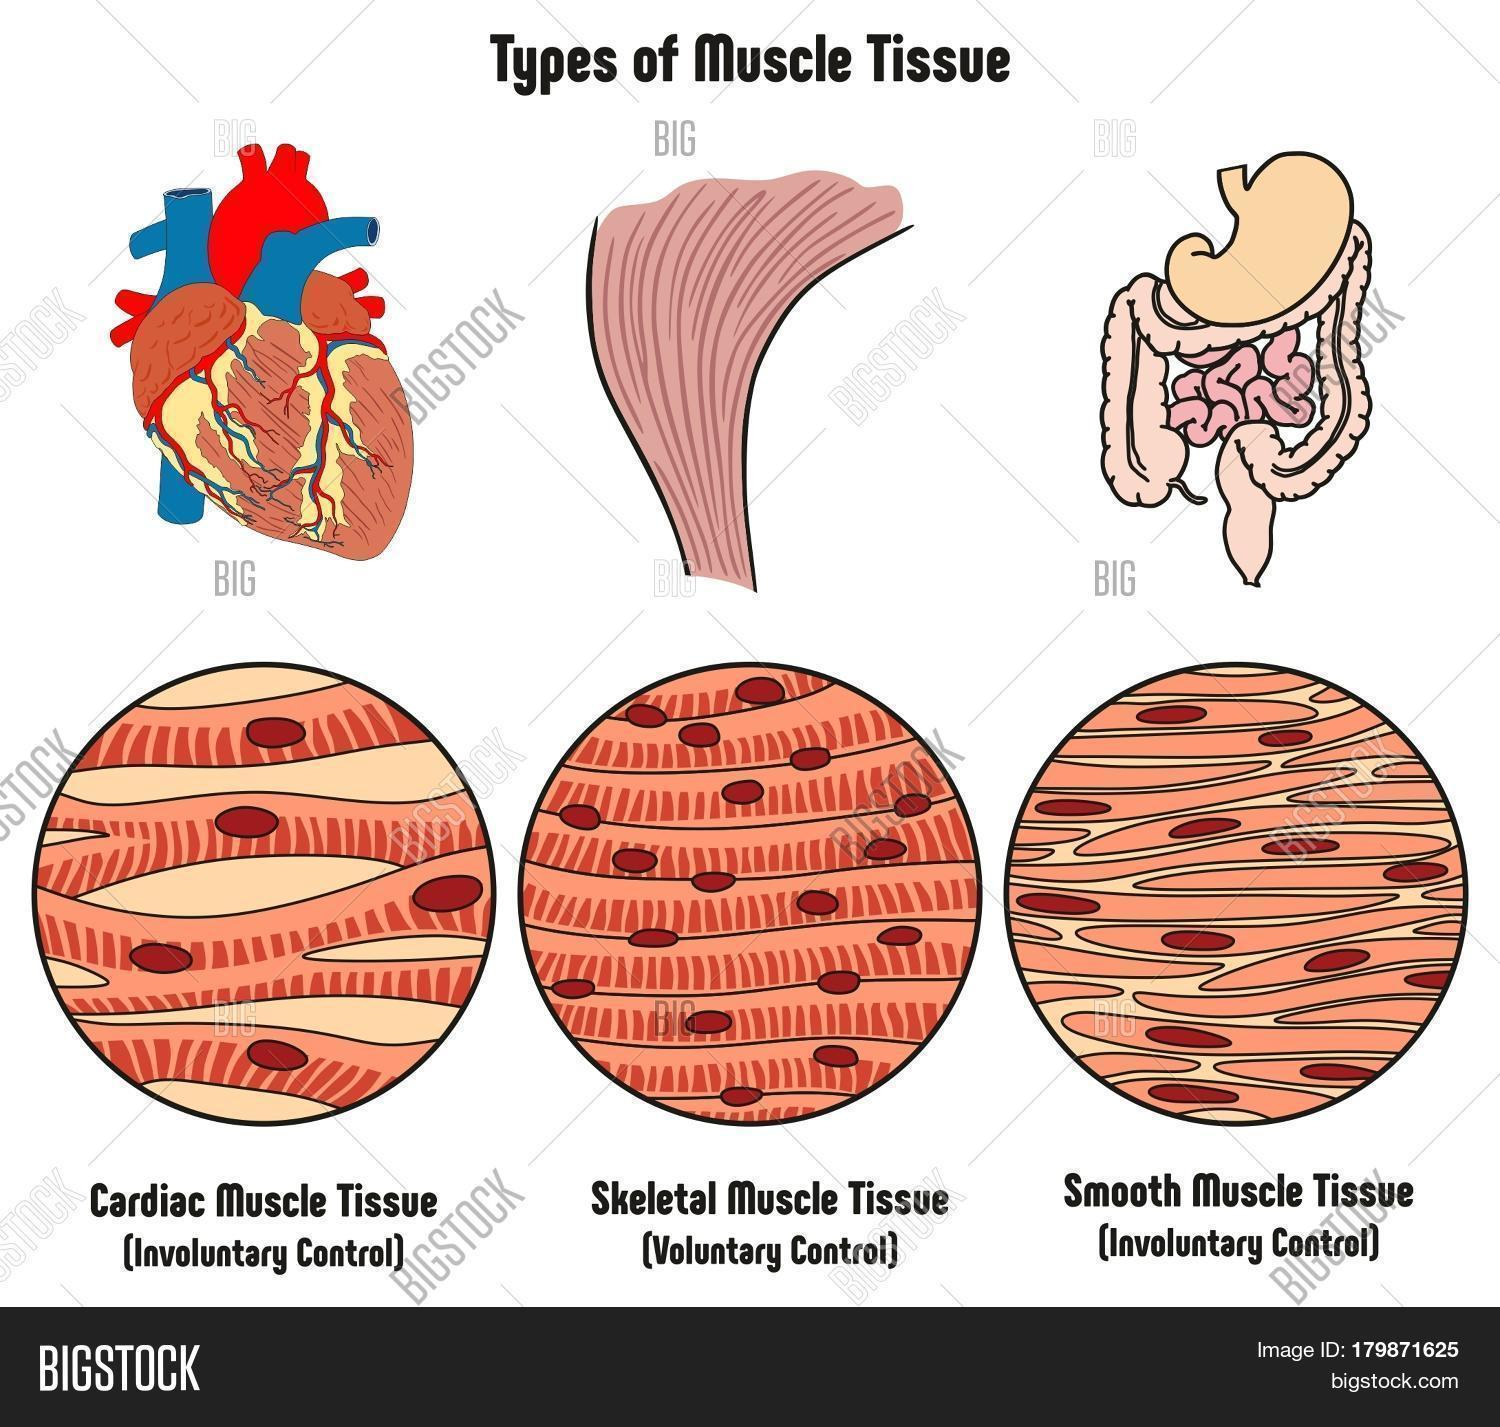 Types muscle tissue human body image photo bigstock types of muscle tissue of human body diagram including cardiac skeletal smooth with example of heart ccuart Image collections